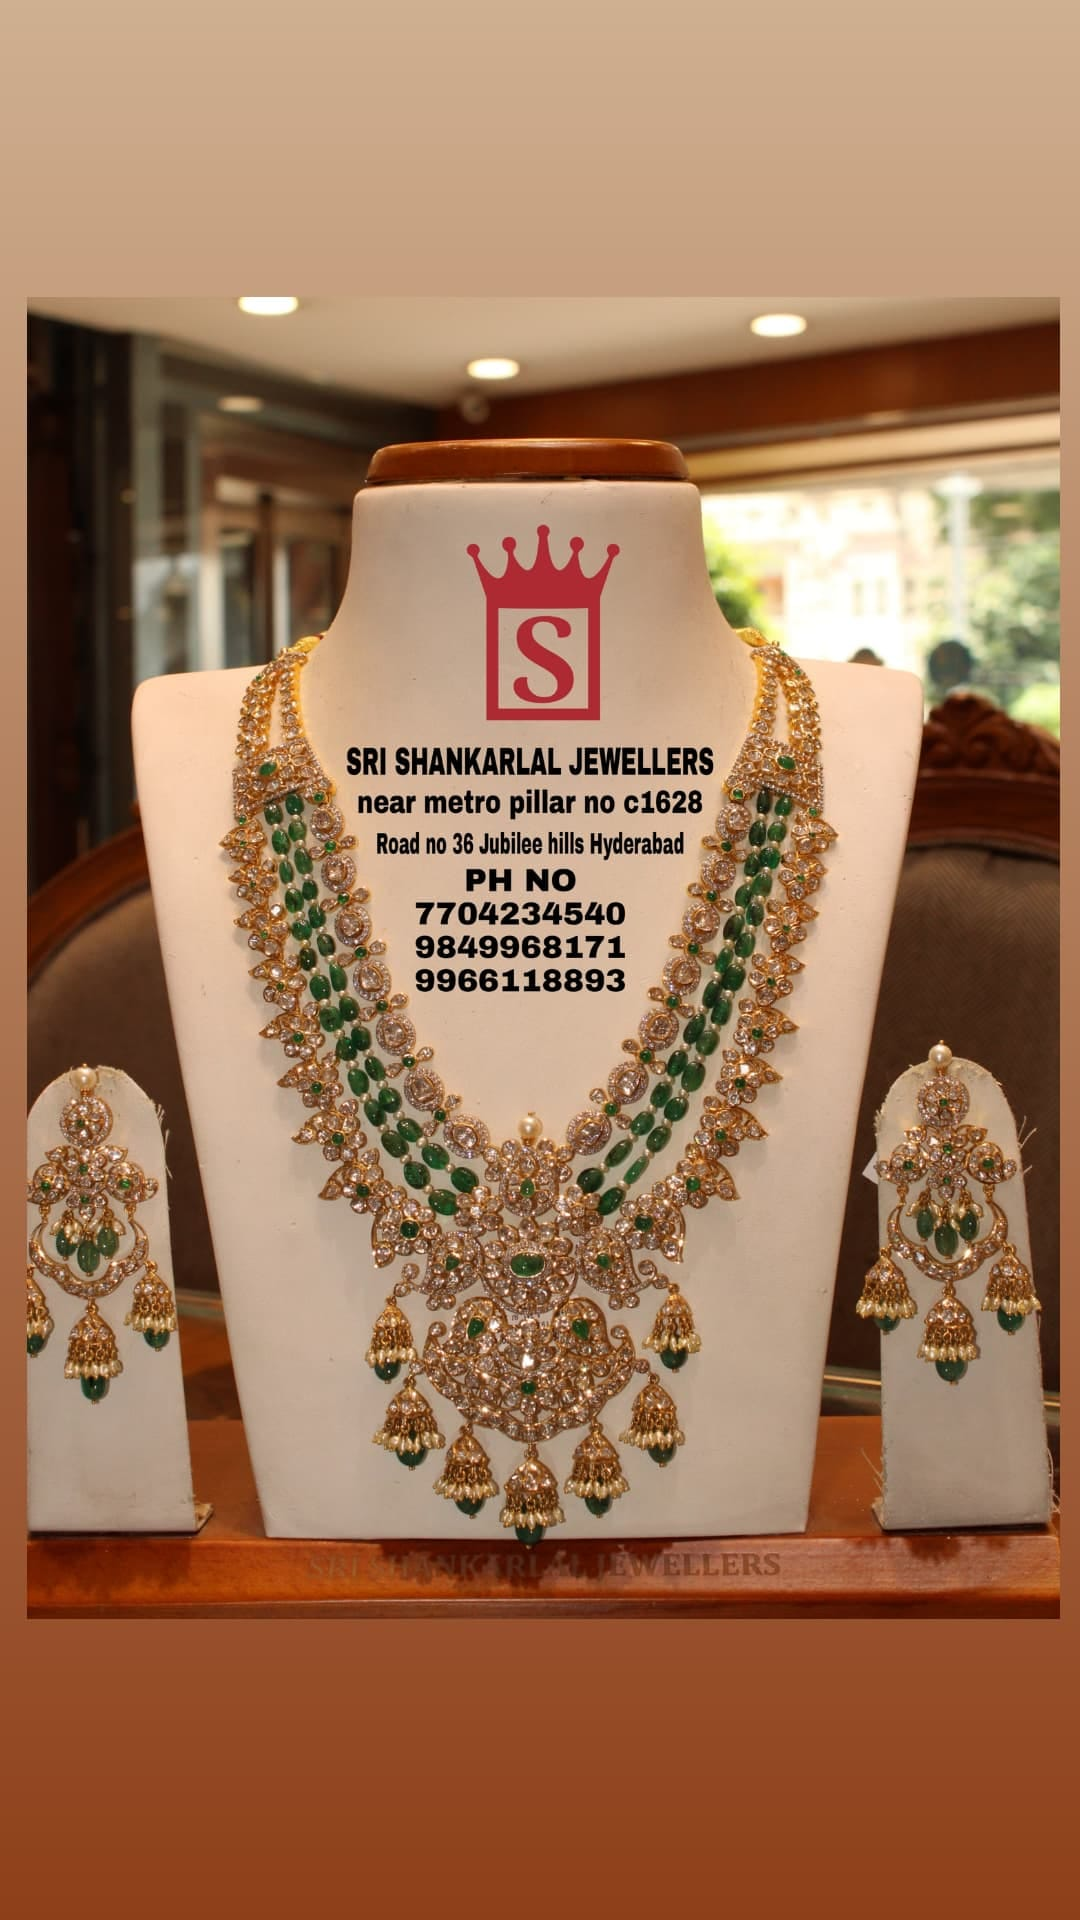 Latest pachi haram with chadballi wedding jewellery in light weight and heavy looking jewellery and vast collection Please visit  on video call Phone number 7702434540 /9849968171/9966118893. 2021-08-24